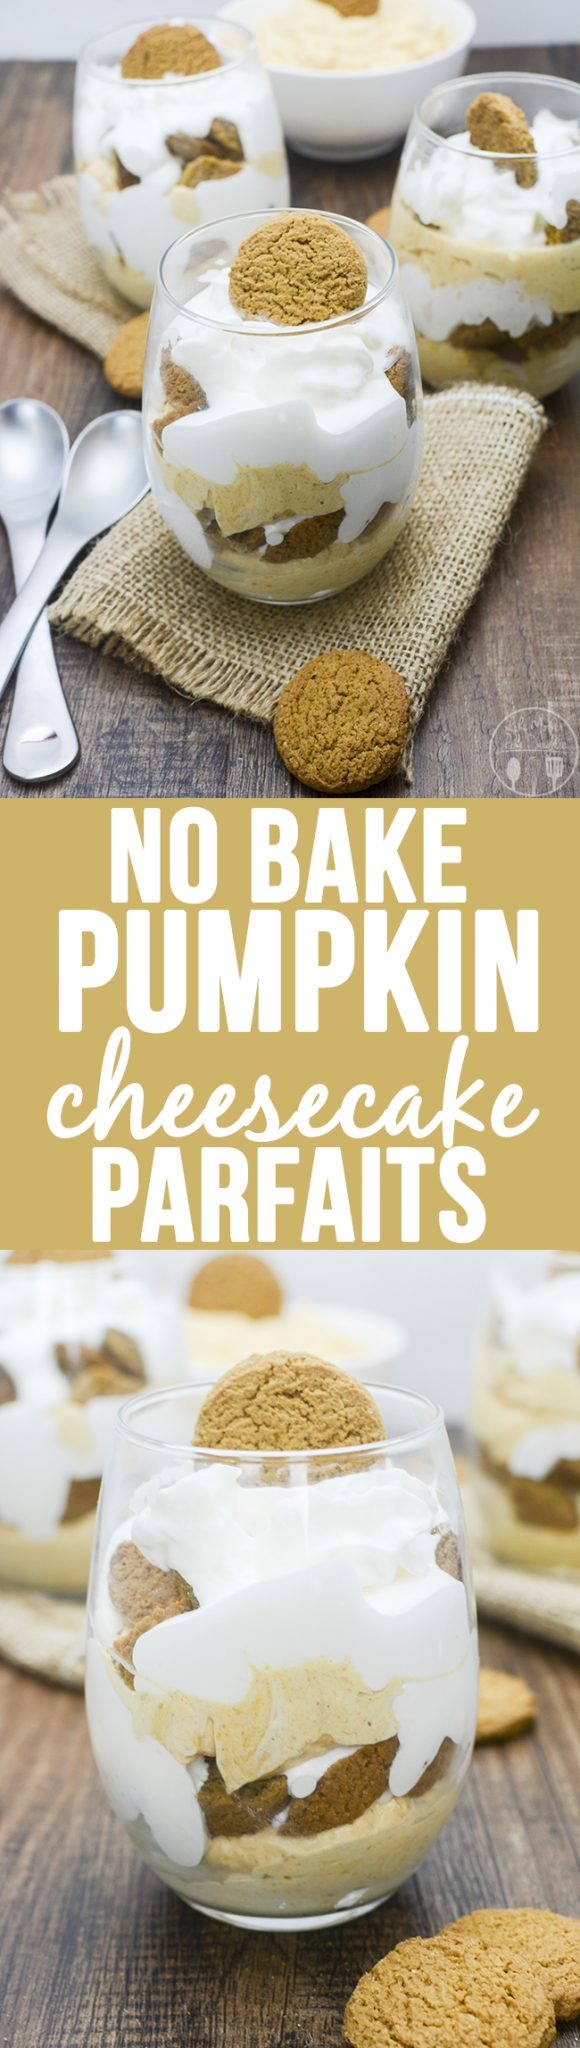 No Bake Pumpkin Cheesecake Parfaits - These delicious parfaits have layers of a quick no bake pumpkin cheesecake, gingersnap cookies and whipped cream for a delicious fall treat!